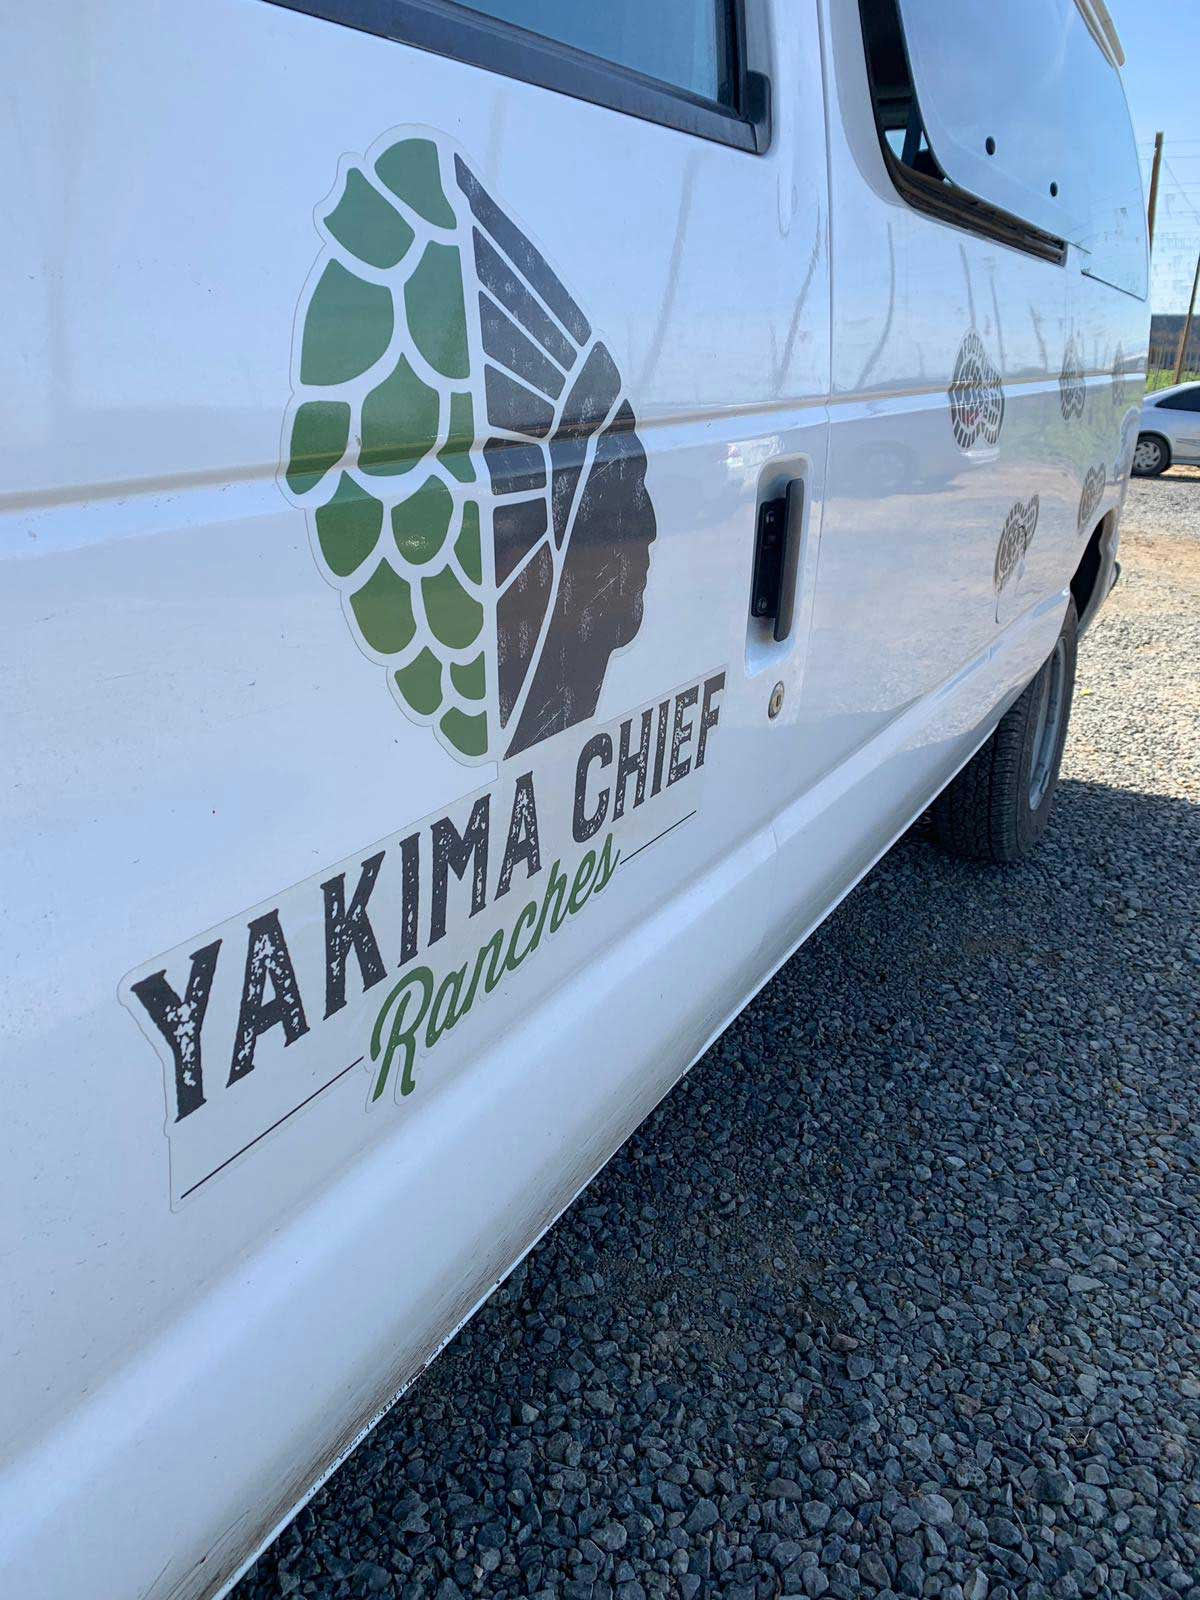 Yakima Chief Ranches